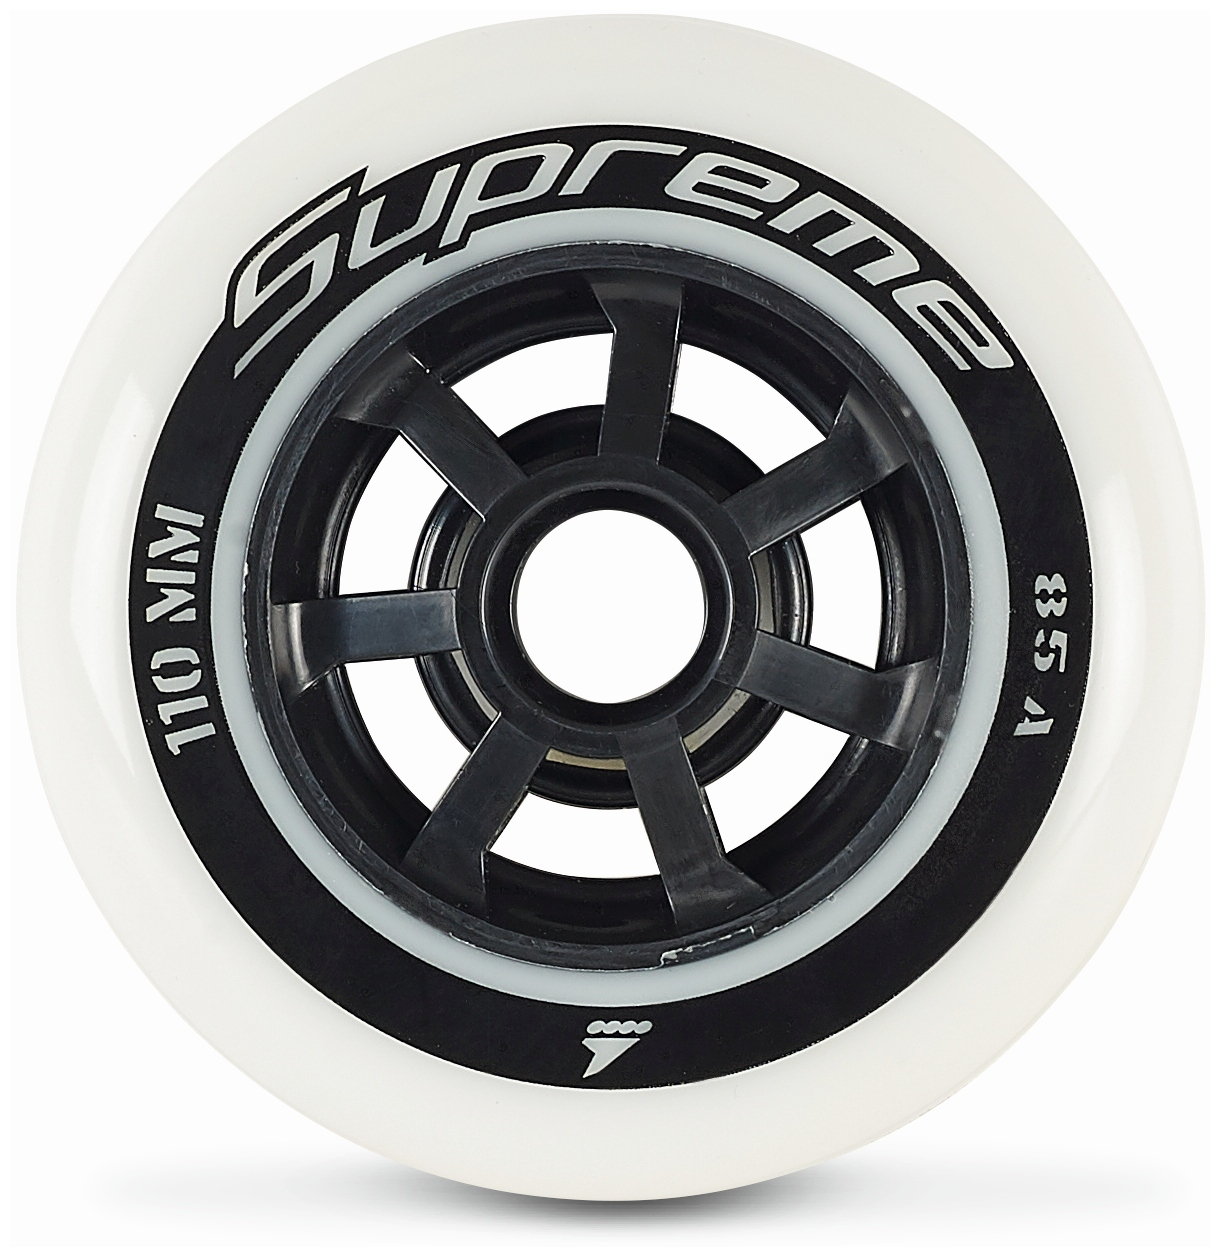 ROLLERBLADE - SUPREME 110mm 85A